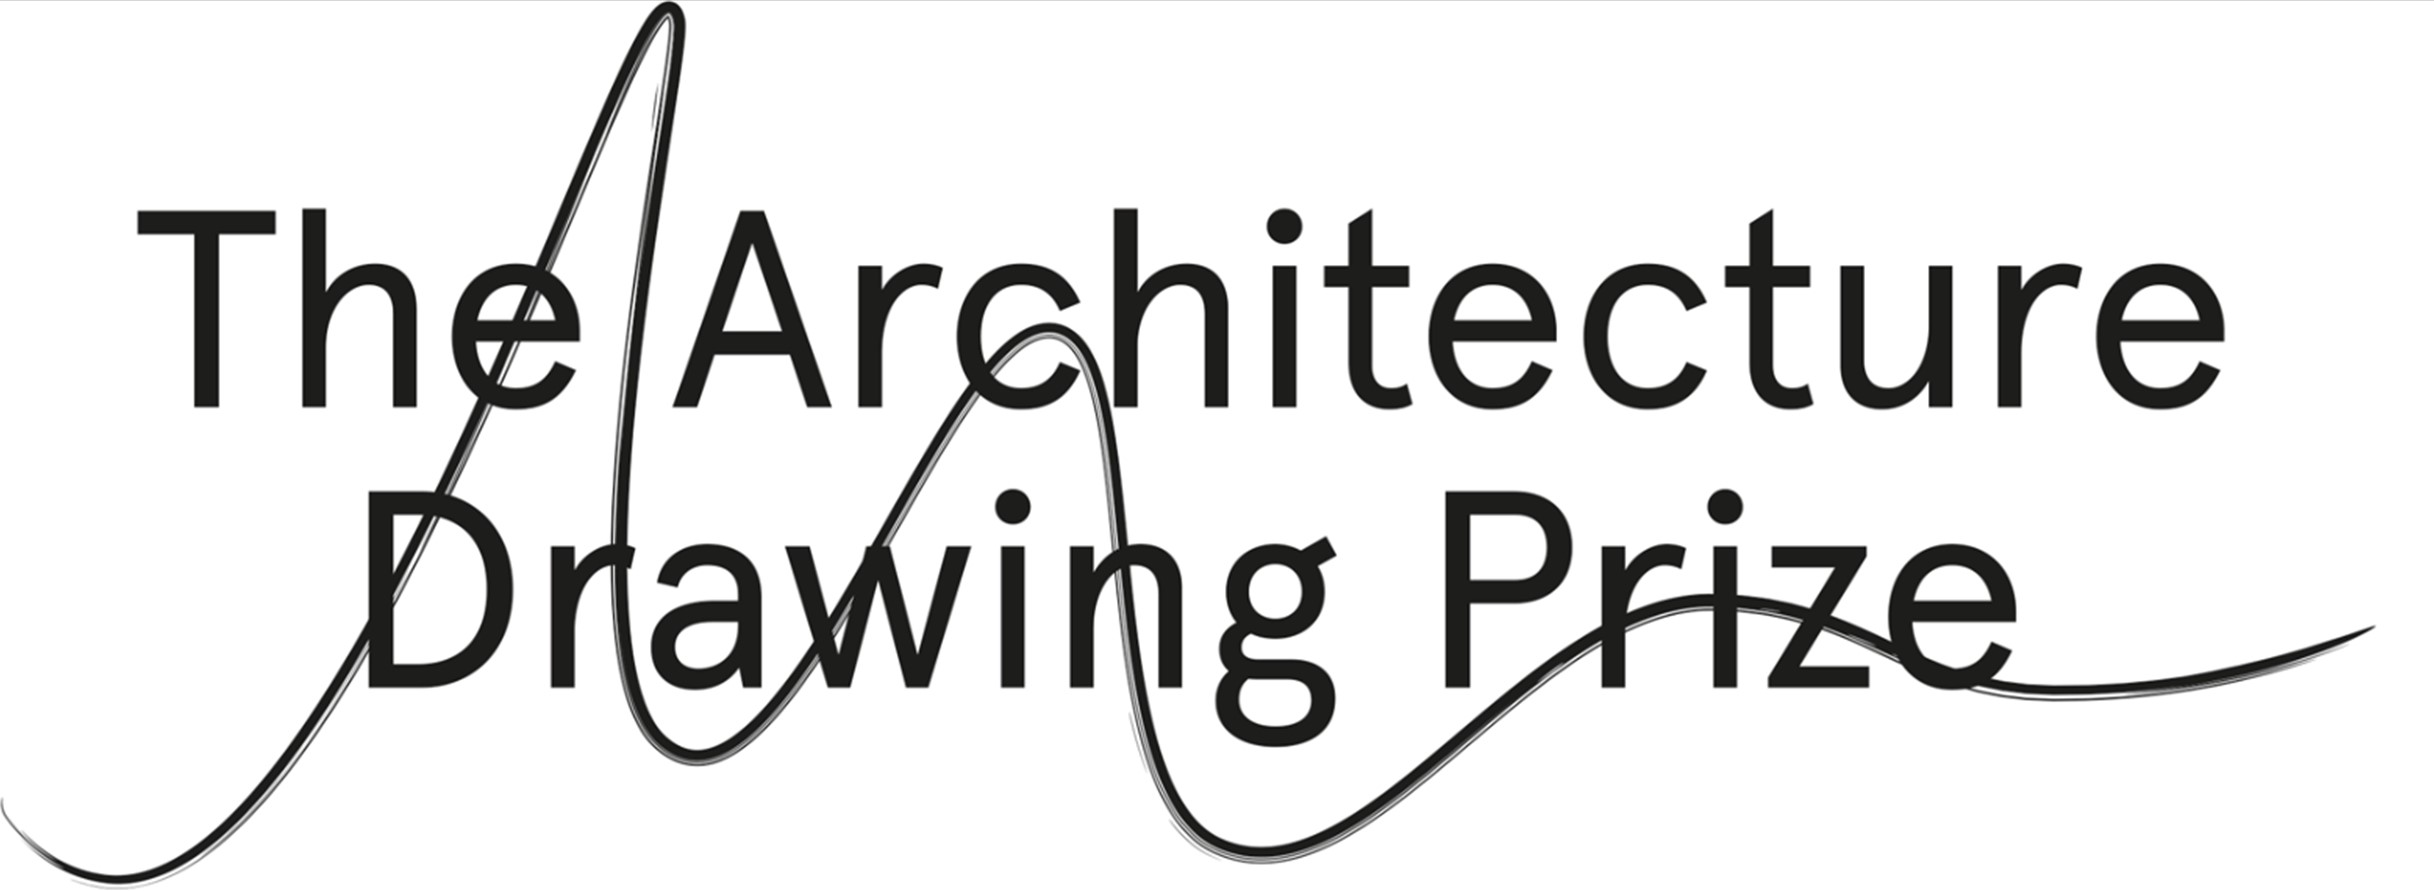 The Architecture Drawing Prize logo